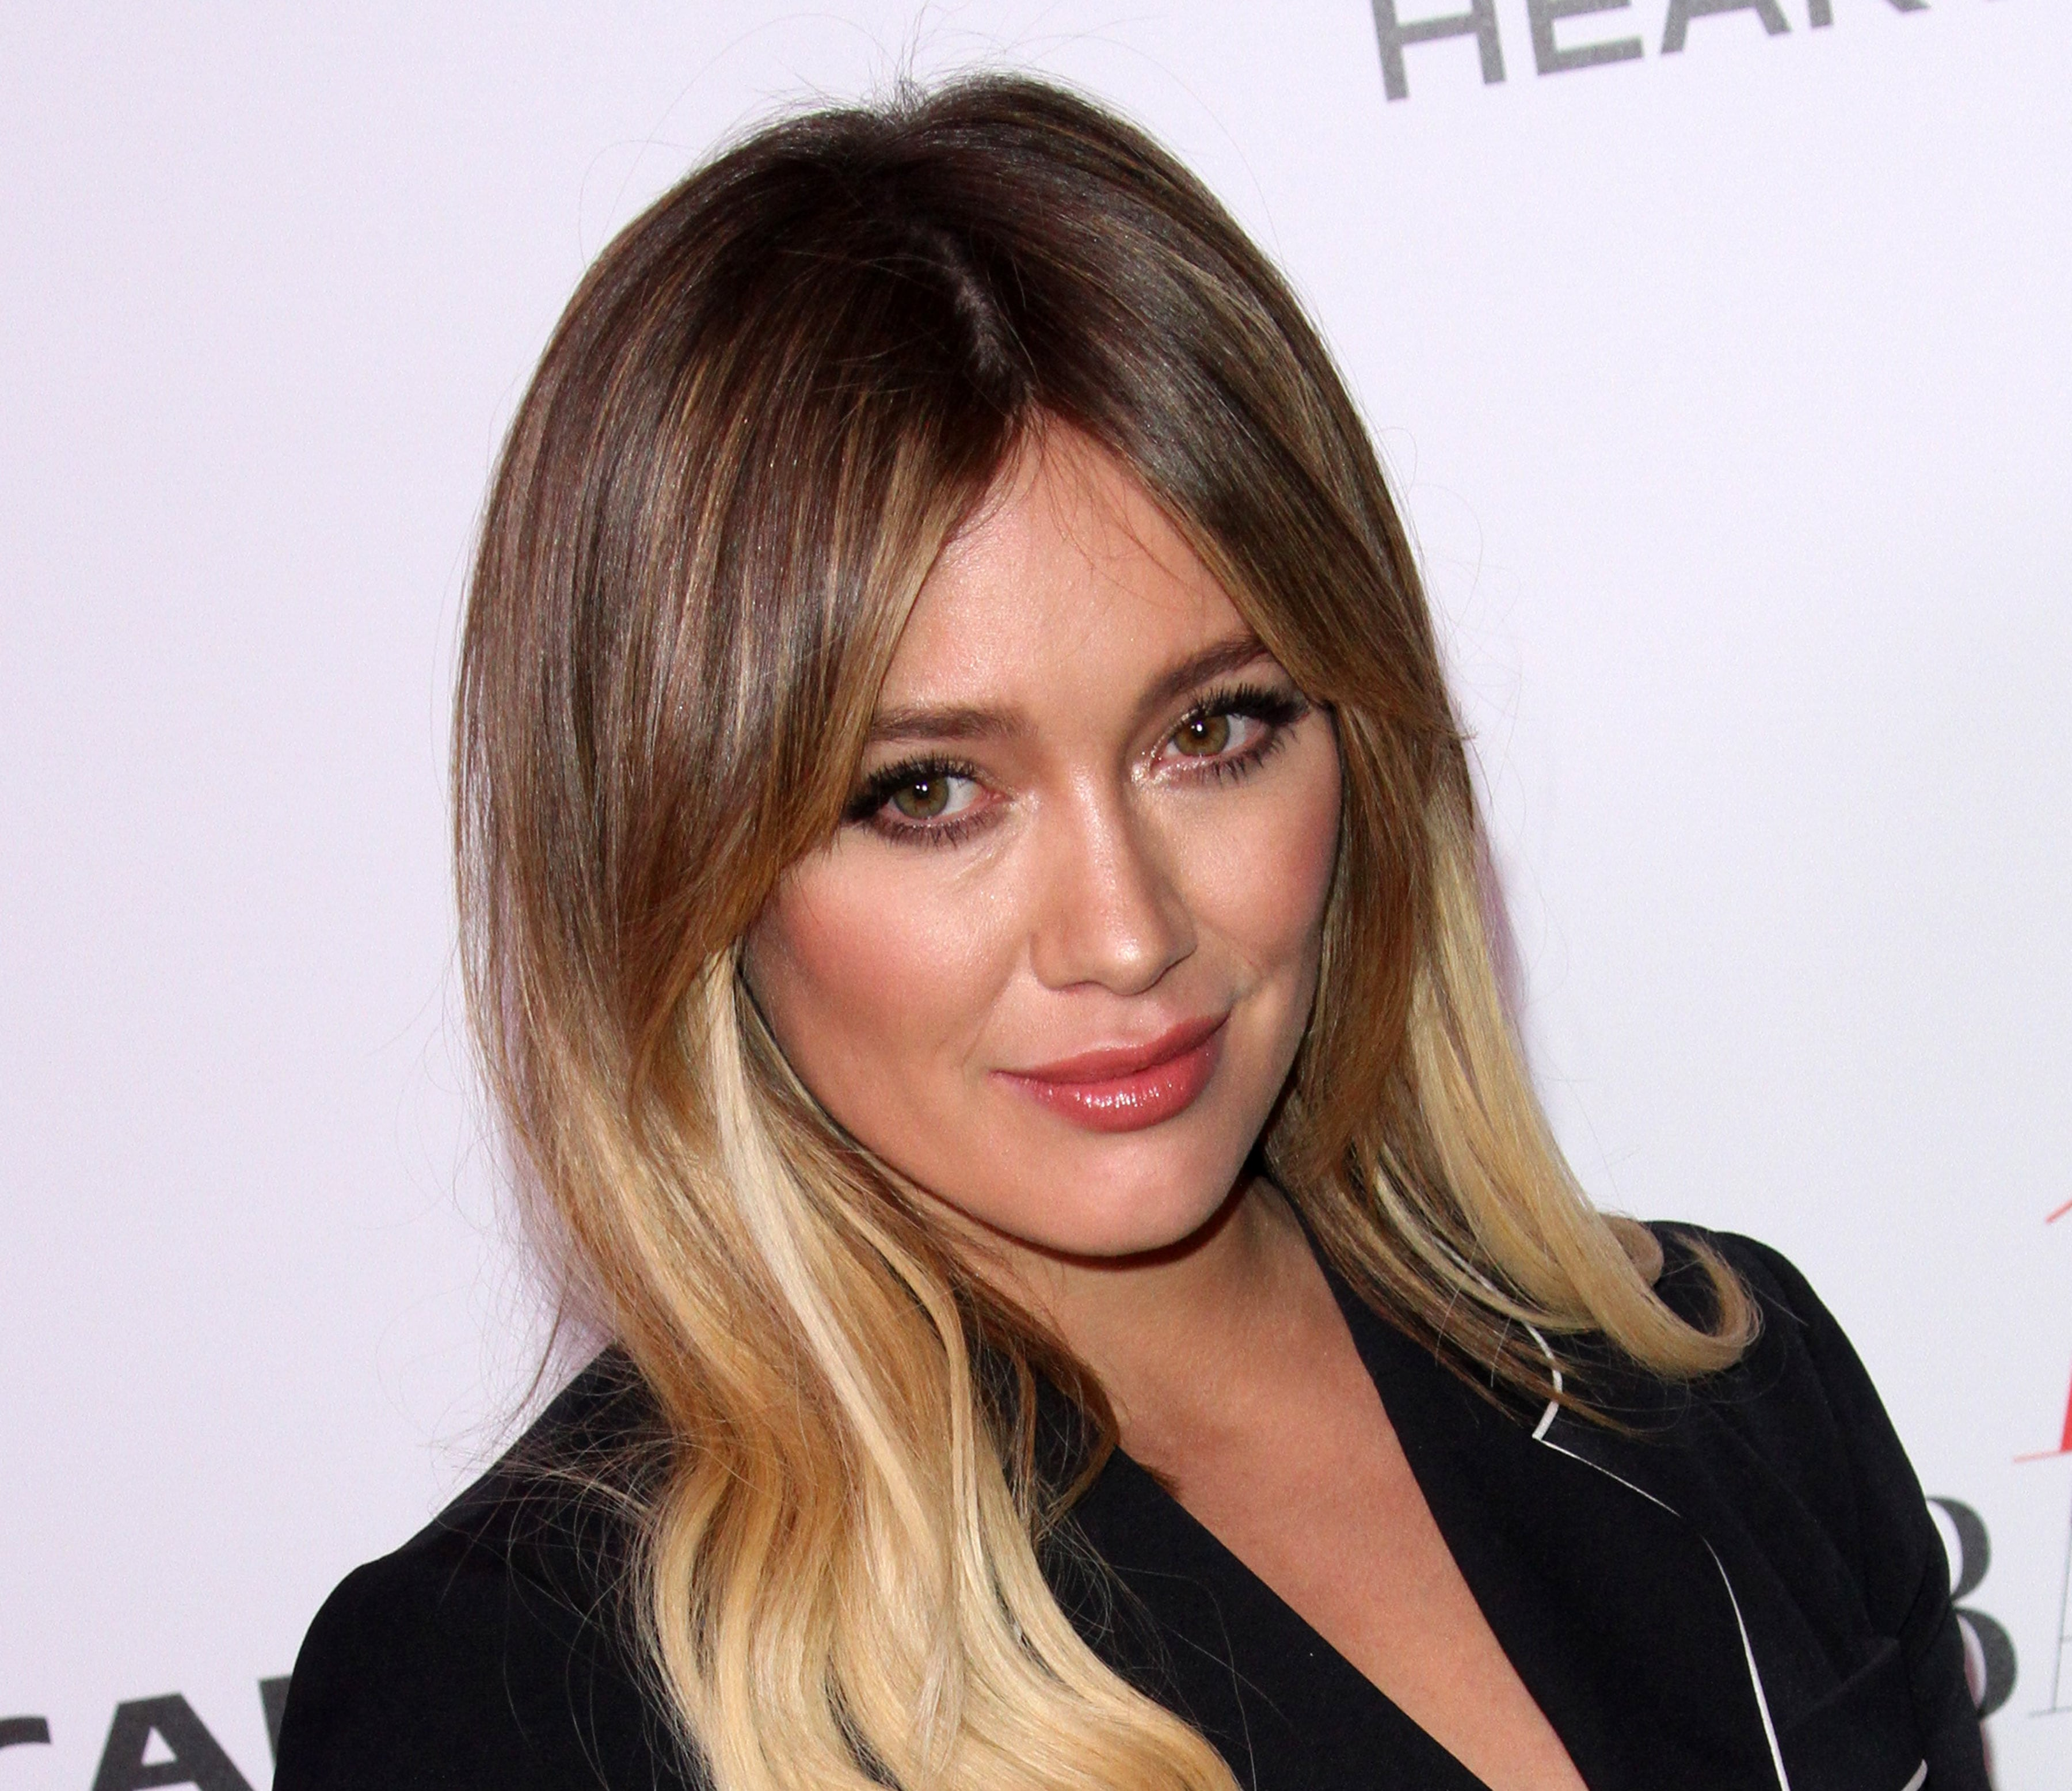 The Basics. Her full name is Hilary Erhard Duff and she was born in Houston, Texas. (Photo: WENN)